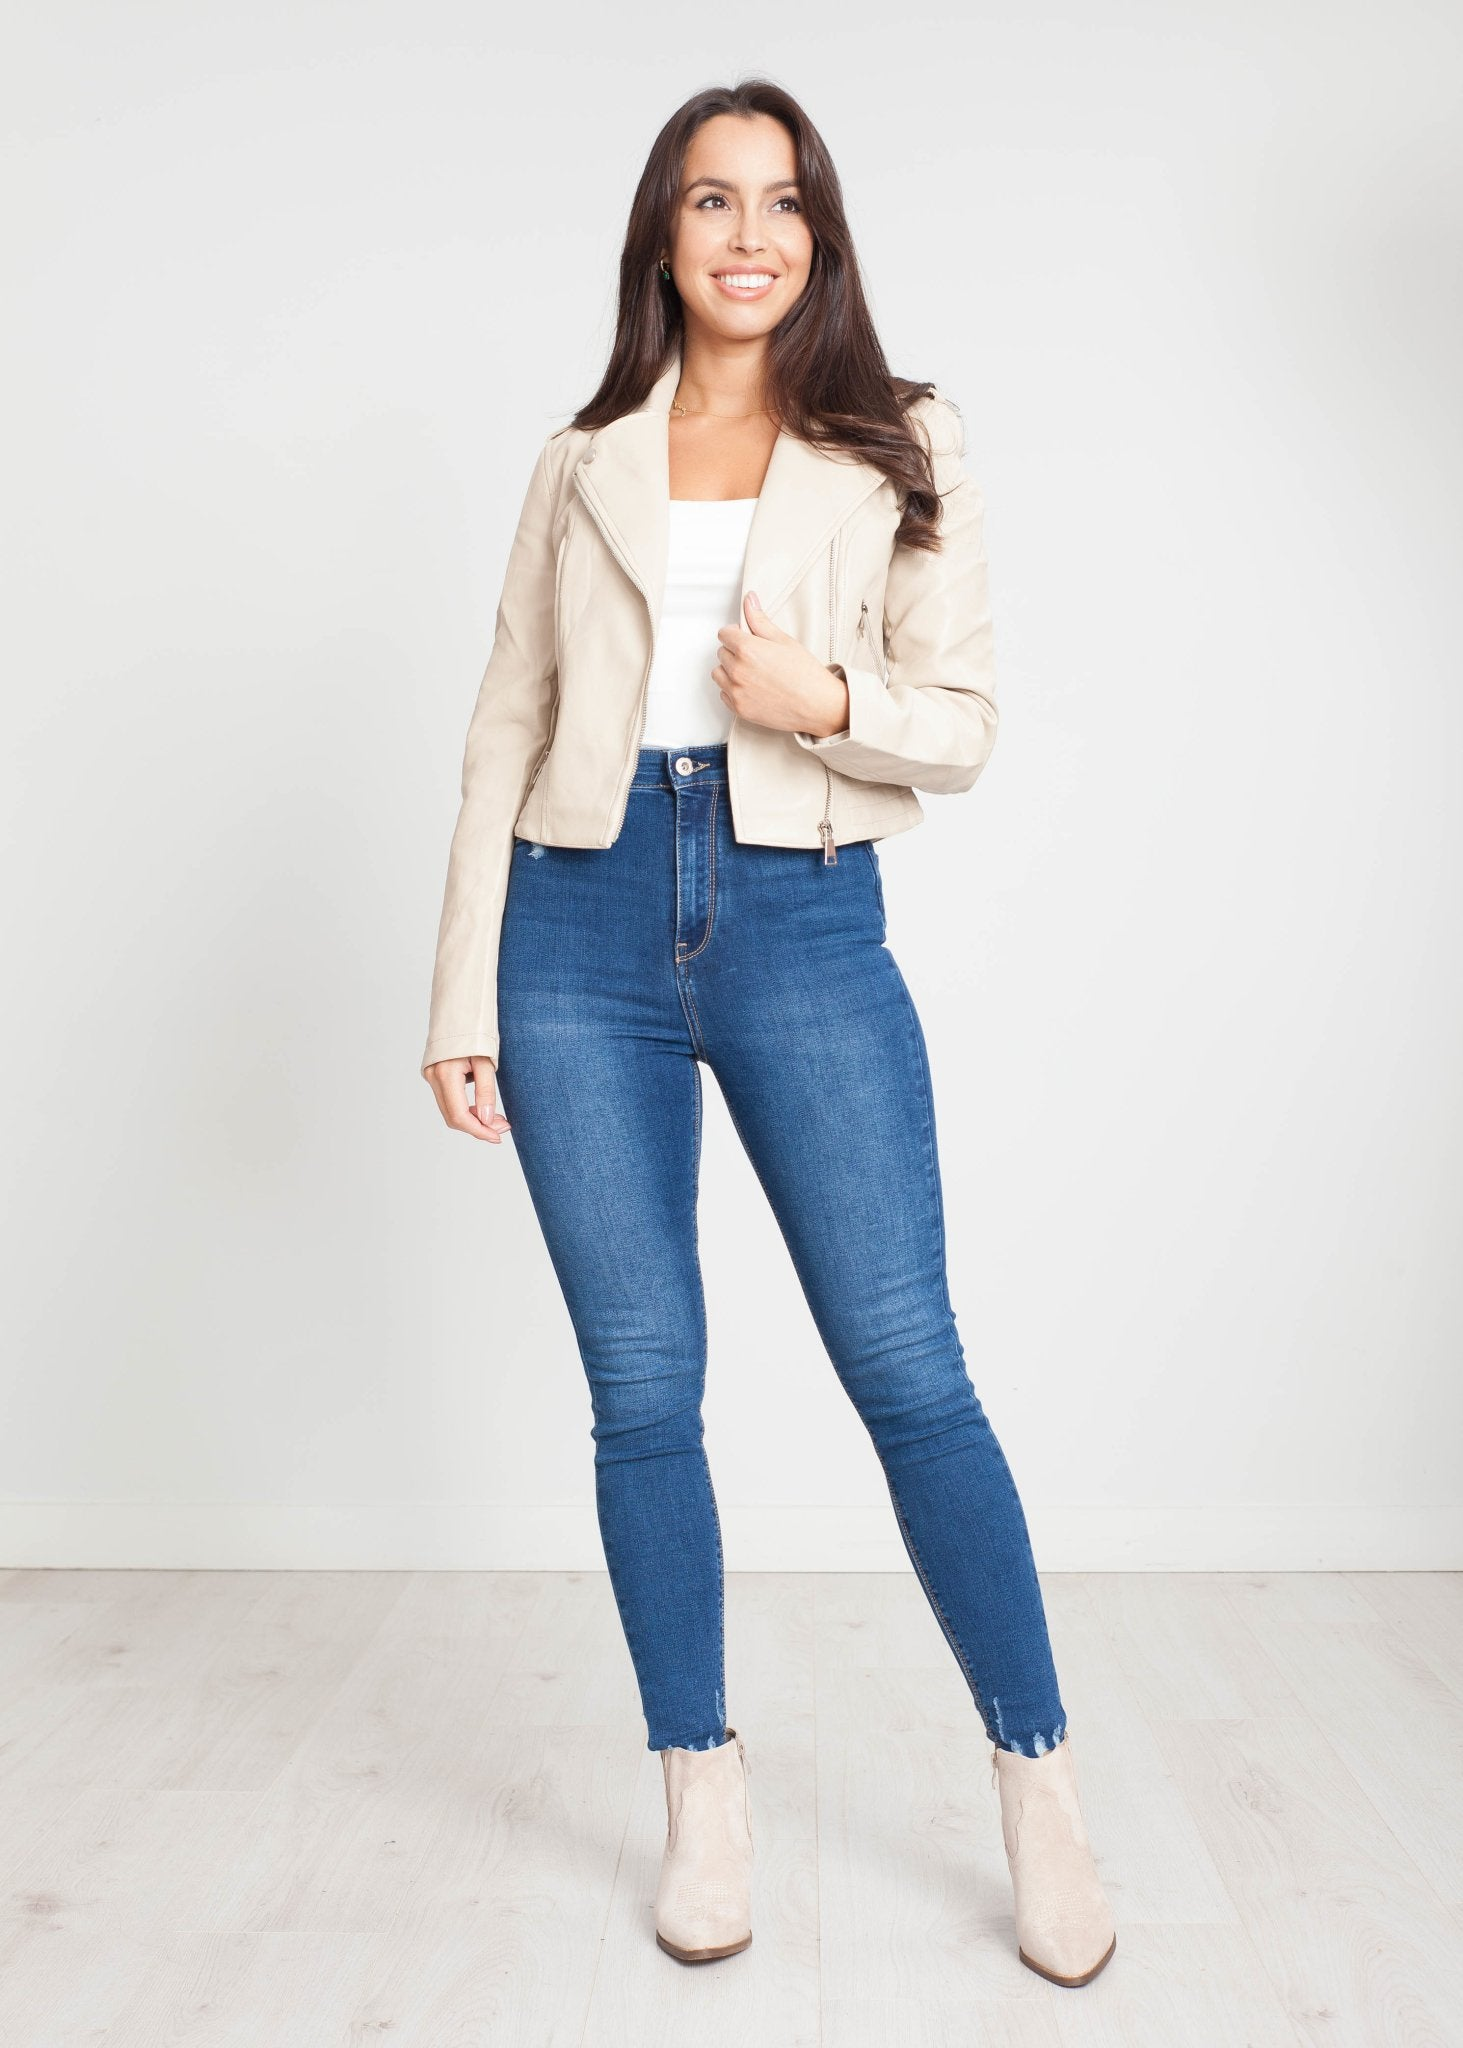 Belle Biker Jacket in Cream - The Walk in Wardrobe